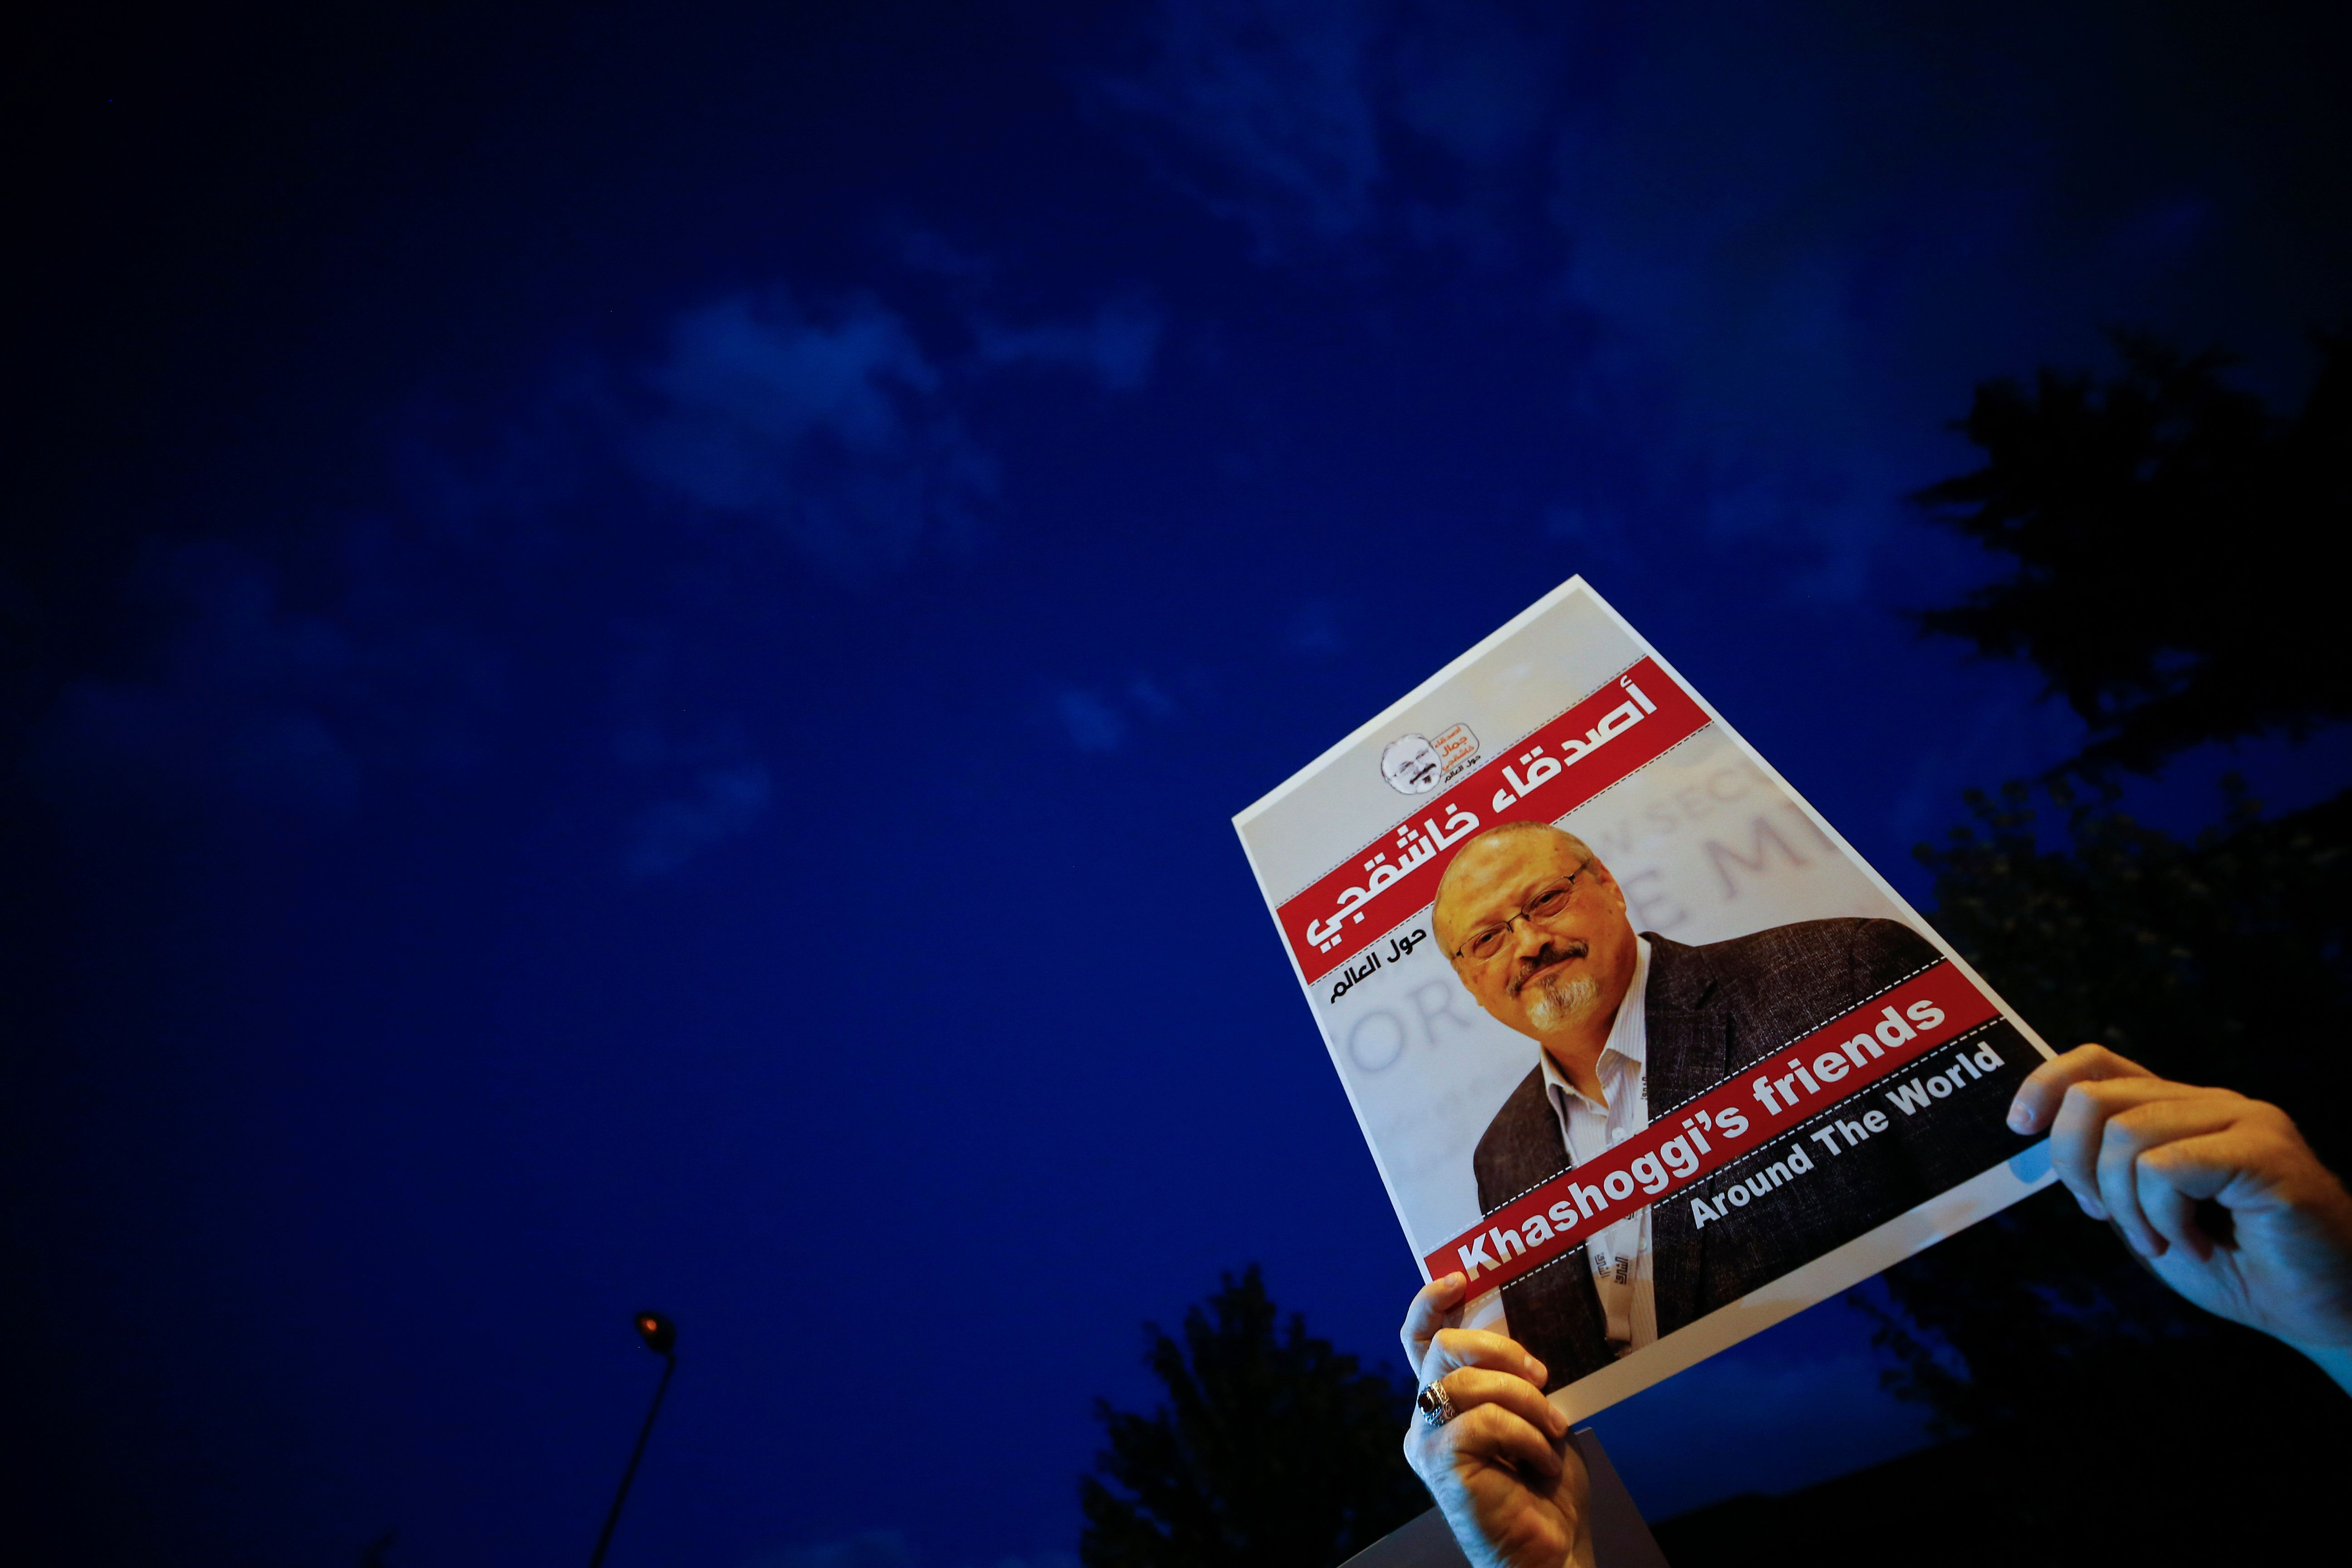 Jamal Khashoggi's Body Dissolved After Dismemberment, Turkish Official